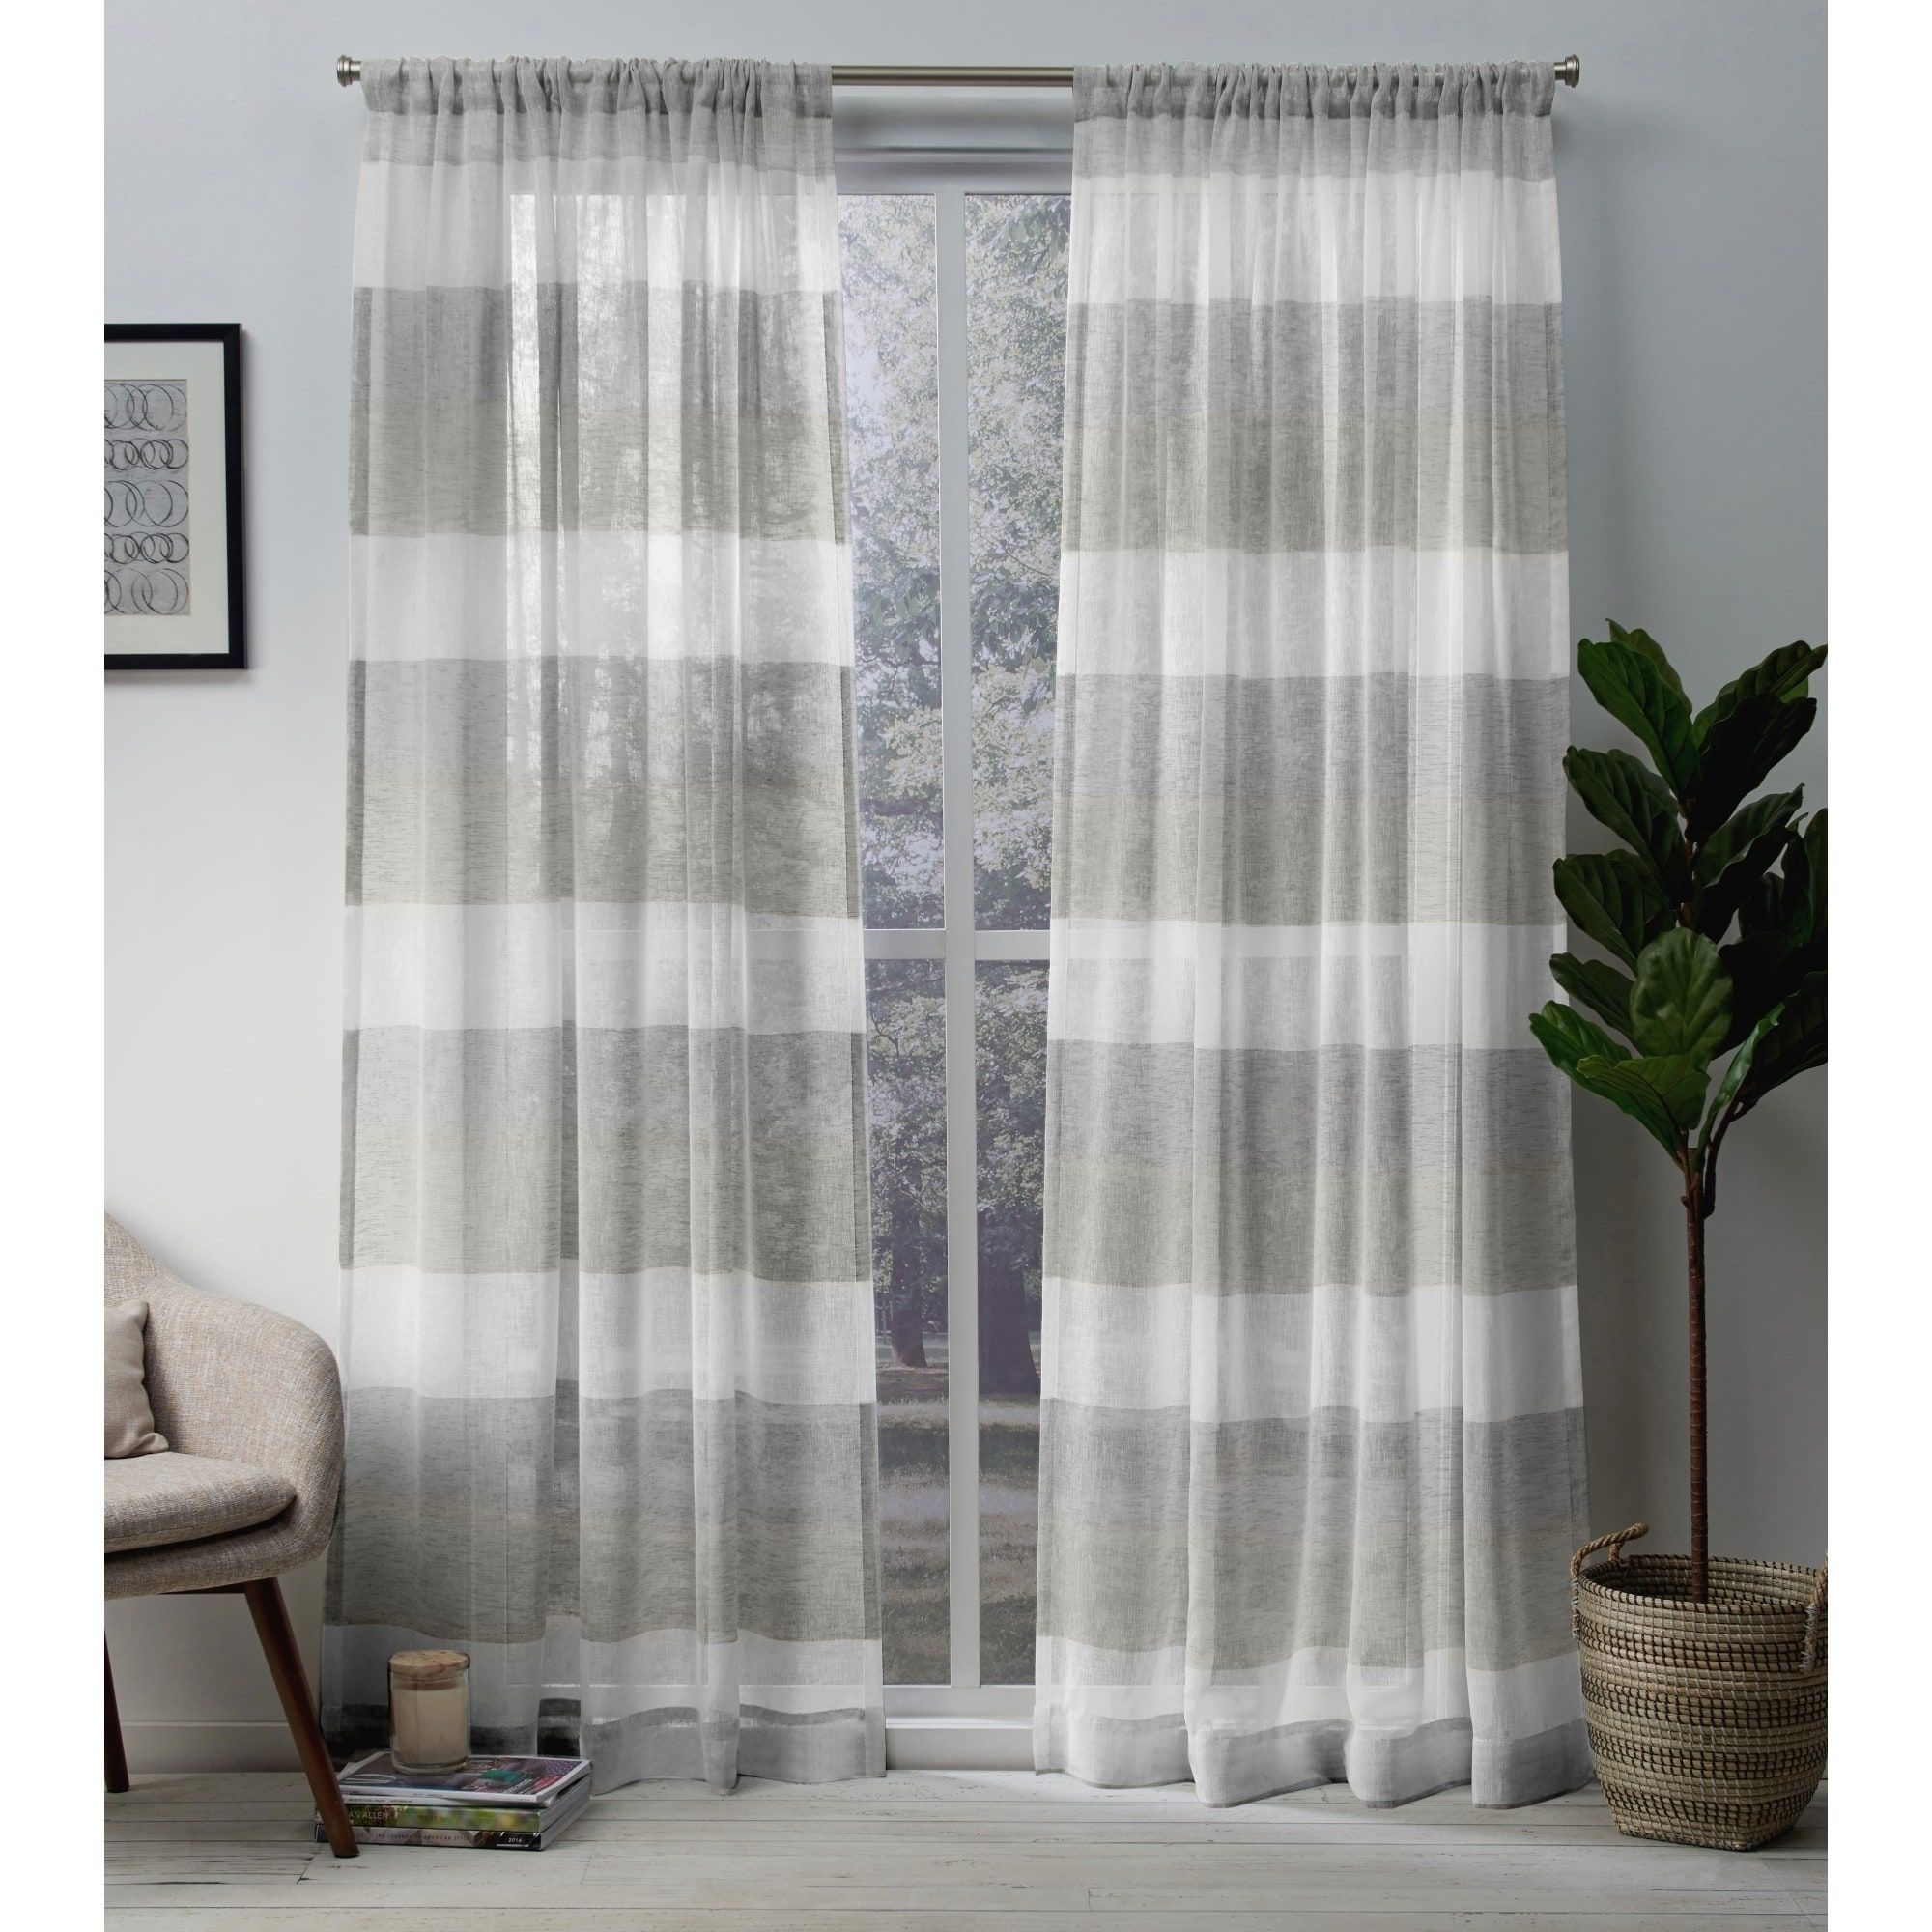 Porch & Den Ocean Stripe Sheer Curtain Panel Pair With Rod Intended For Ocean Striped Window Curtain Panel Pairs With Grommet Top (View 10 of 20)